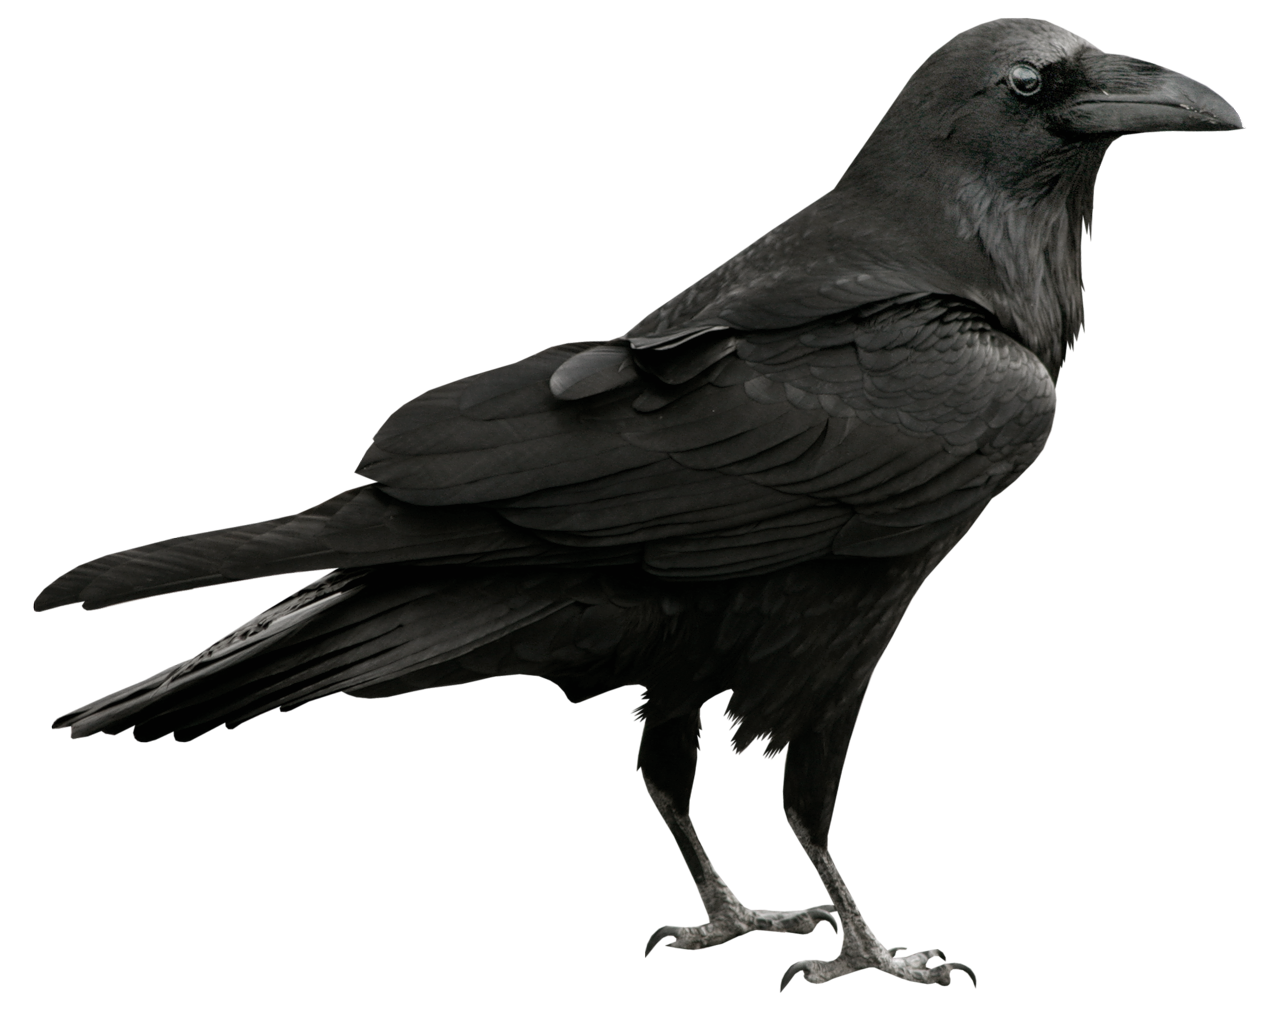 Cool Raven Transparent image #32818 - Raven PNG - Crow HD PNG